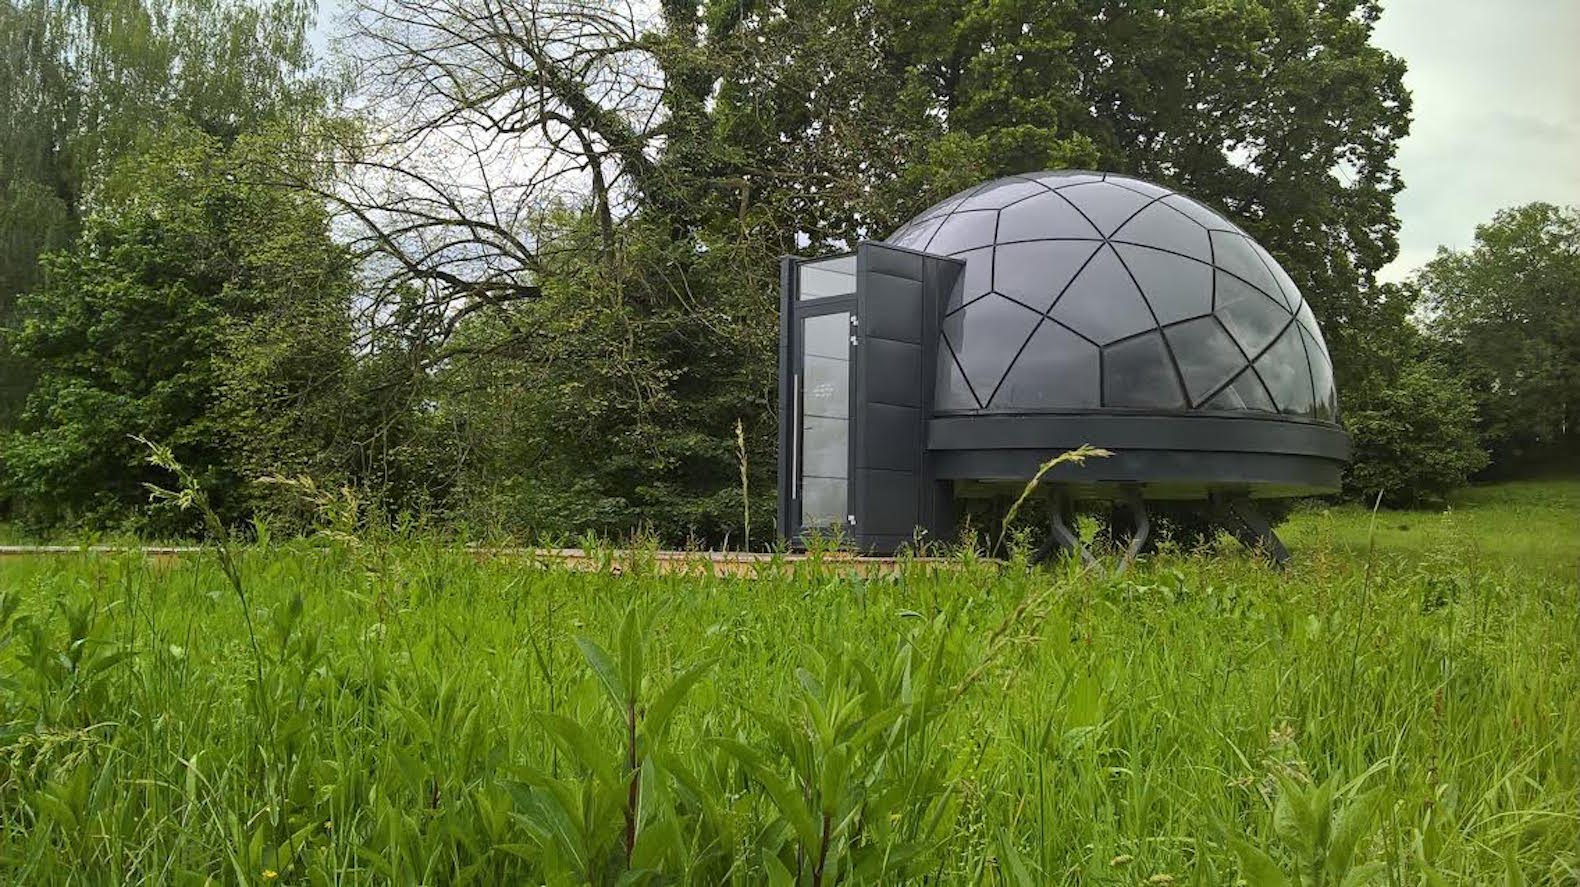 Mobile Smartdome homes pop up almost anywhere starting at €20k